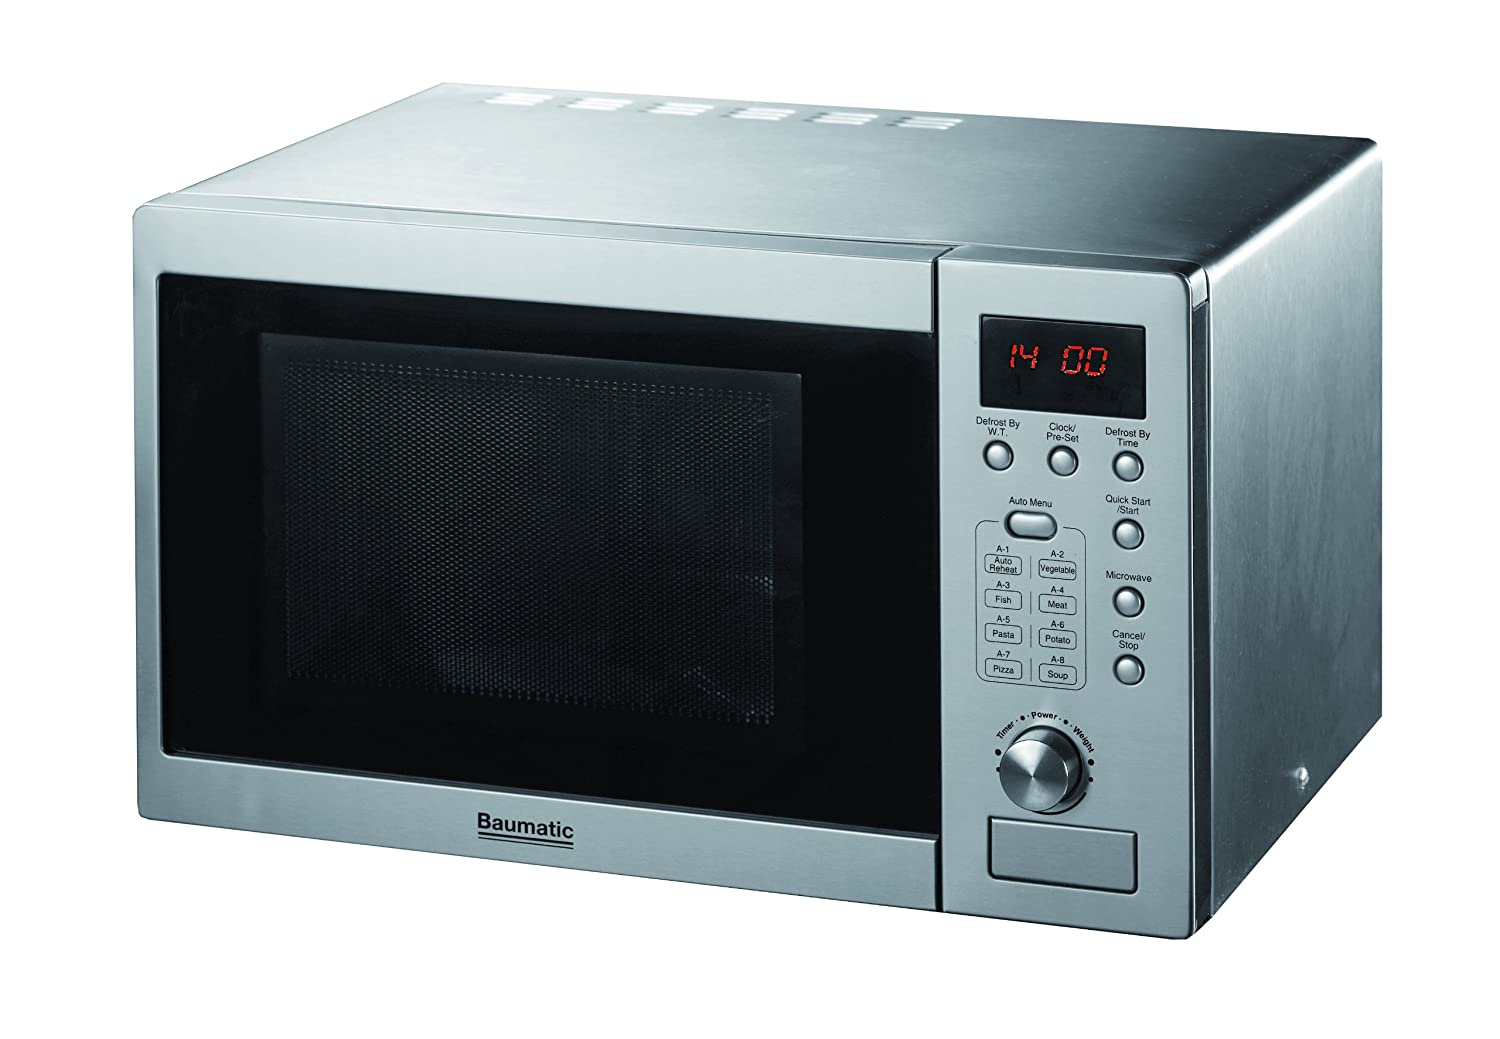 Baumatic Kitchen Appliances Baumatic Freestanding Stainless Steel Microwave Oven 20 Litre